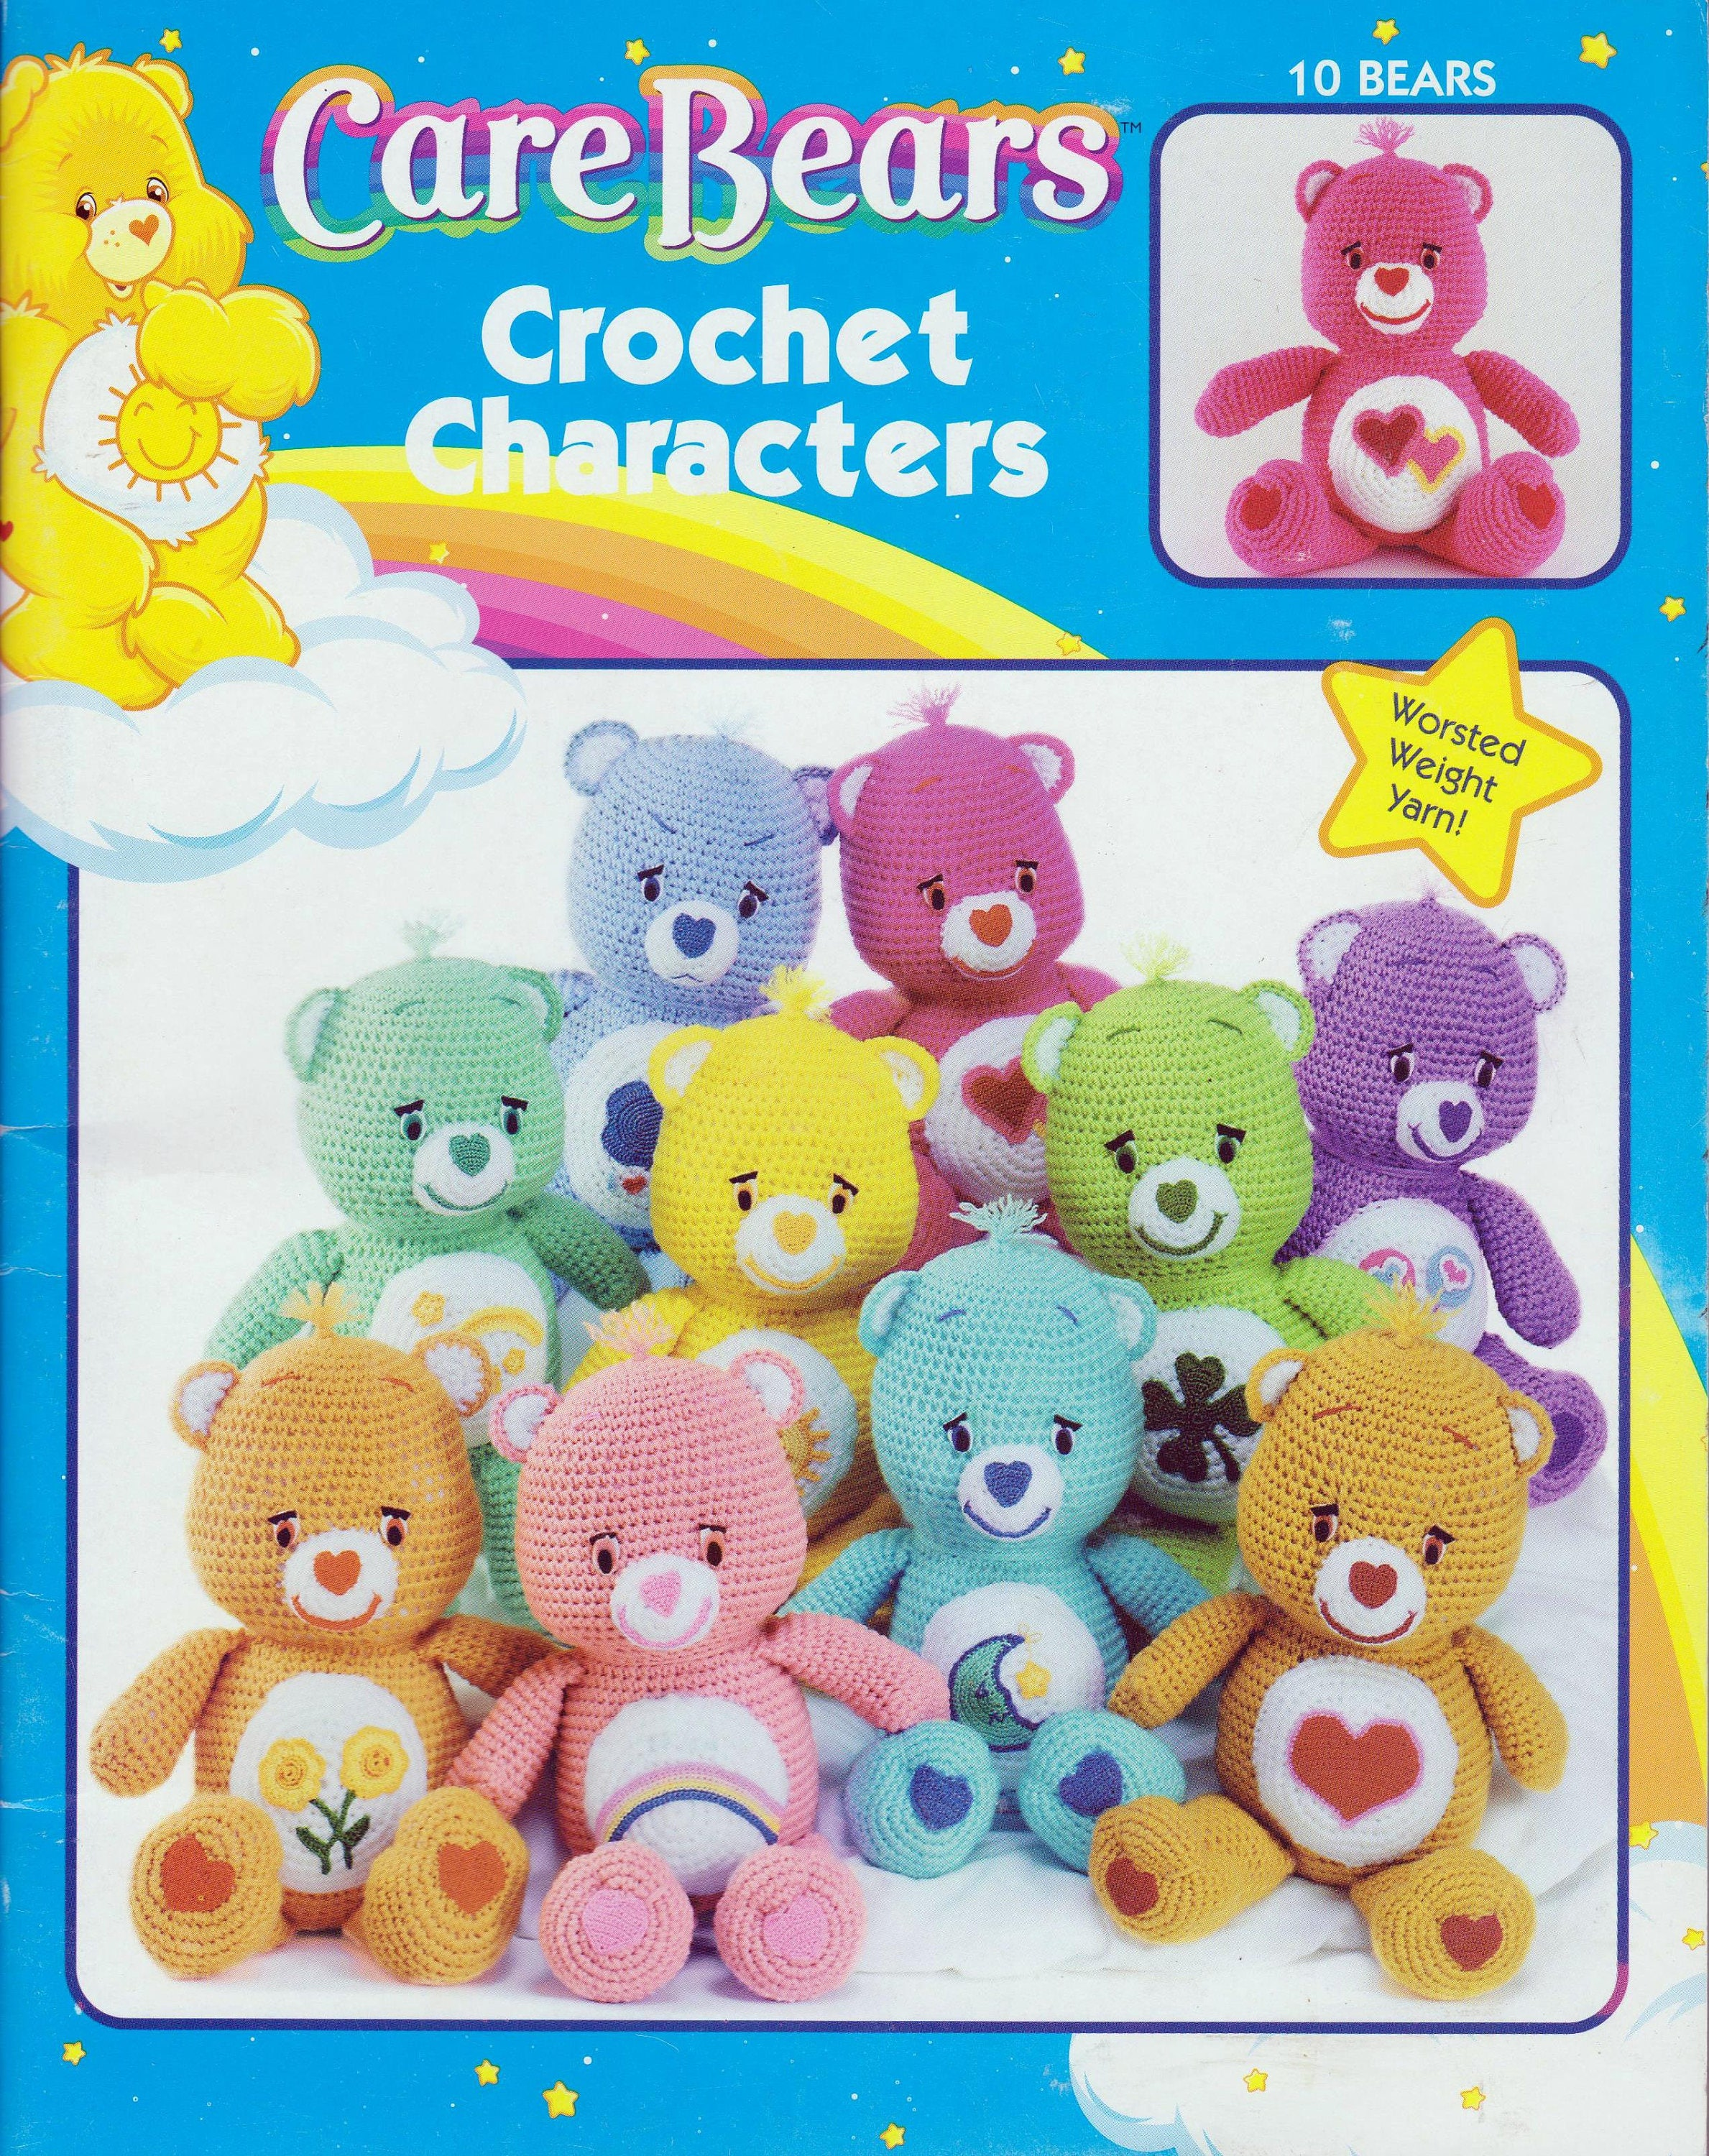 Care Bears Crochet Characters Craft Patterns Instruction Book 10 ...